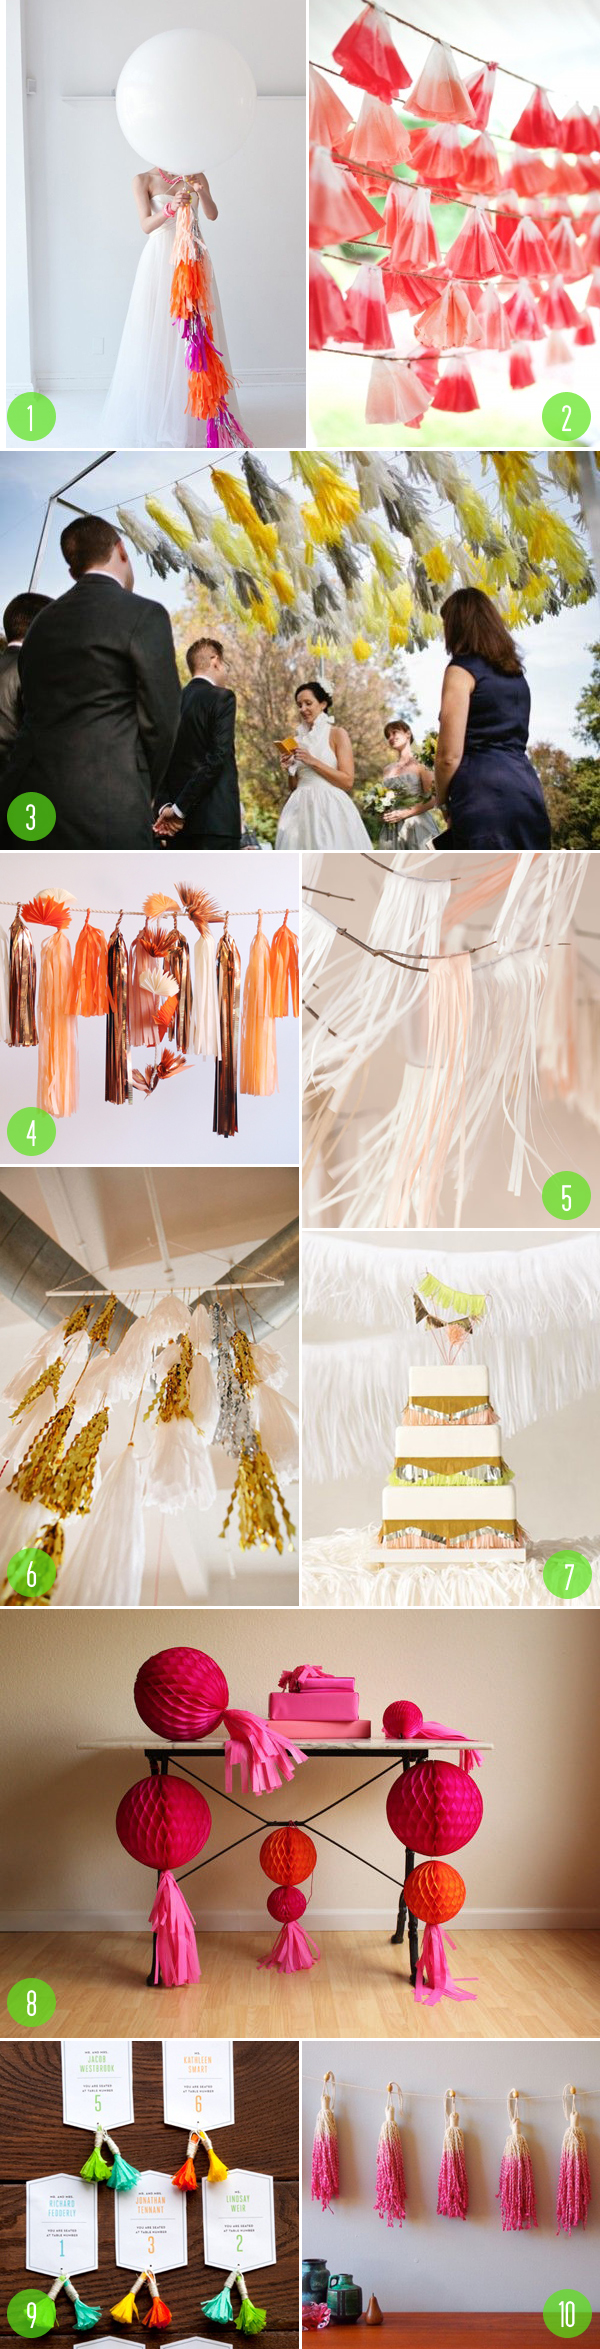 tassels in weddings